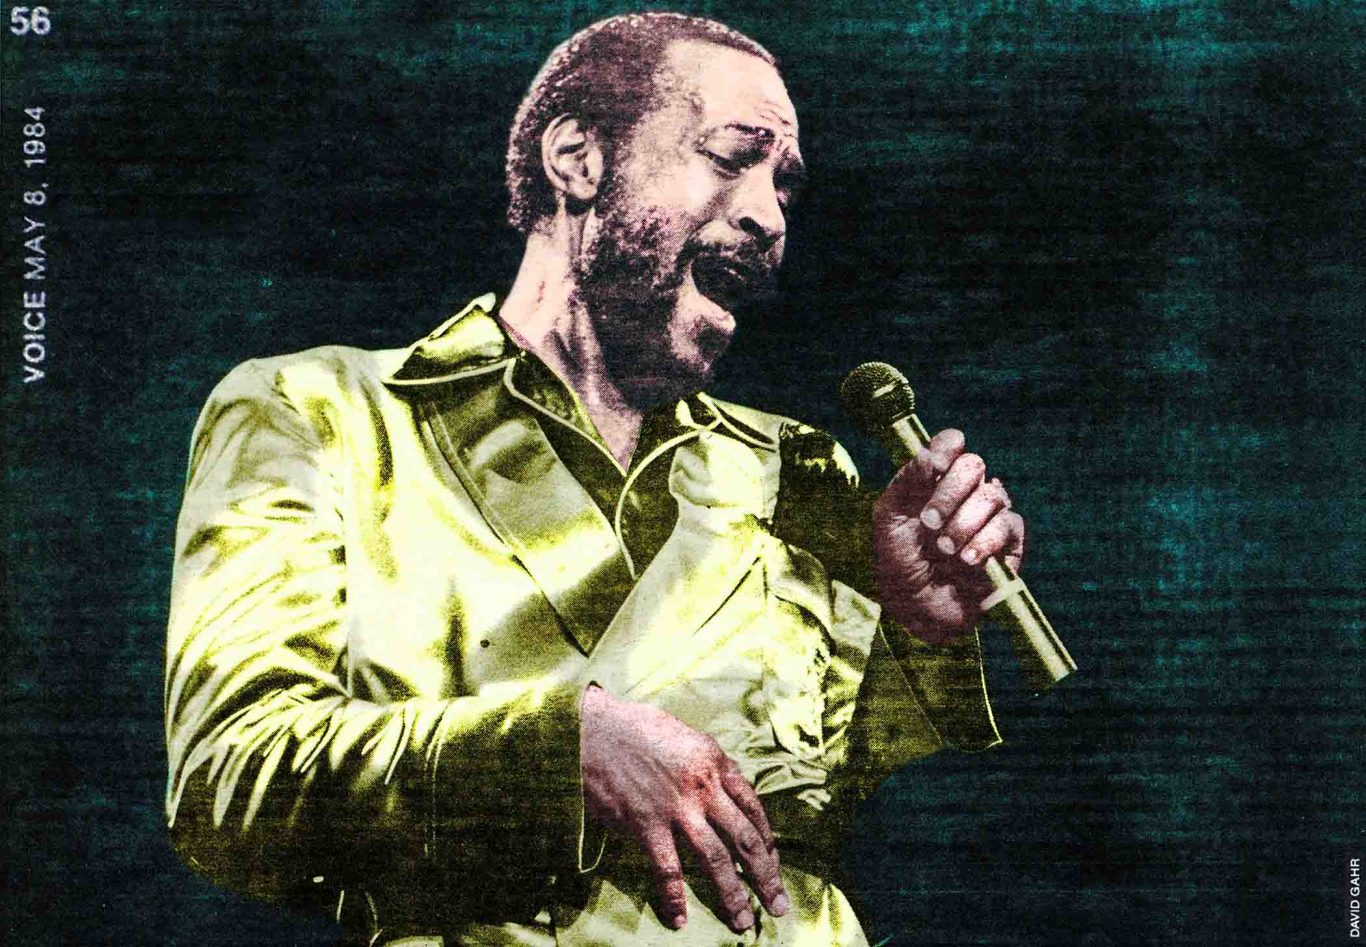 1984 Village Voice article by Nelson George about Marvin Gaye